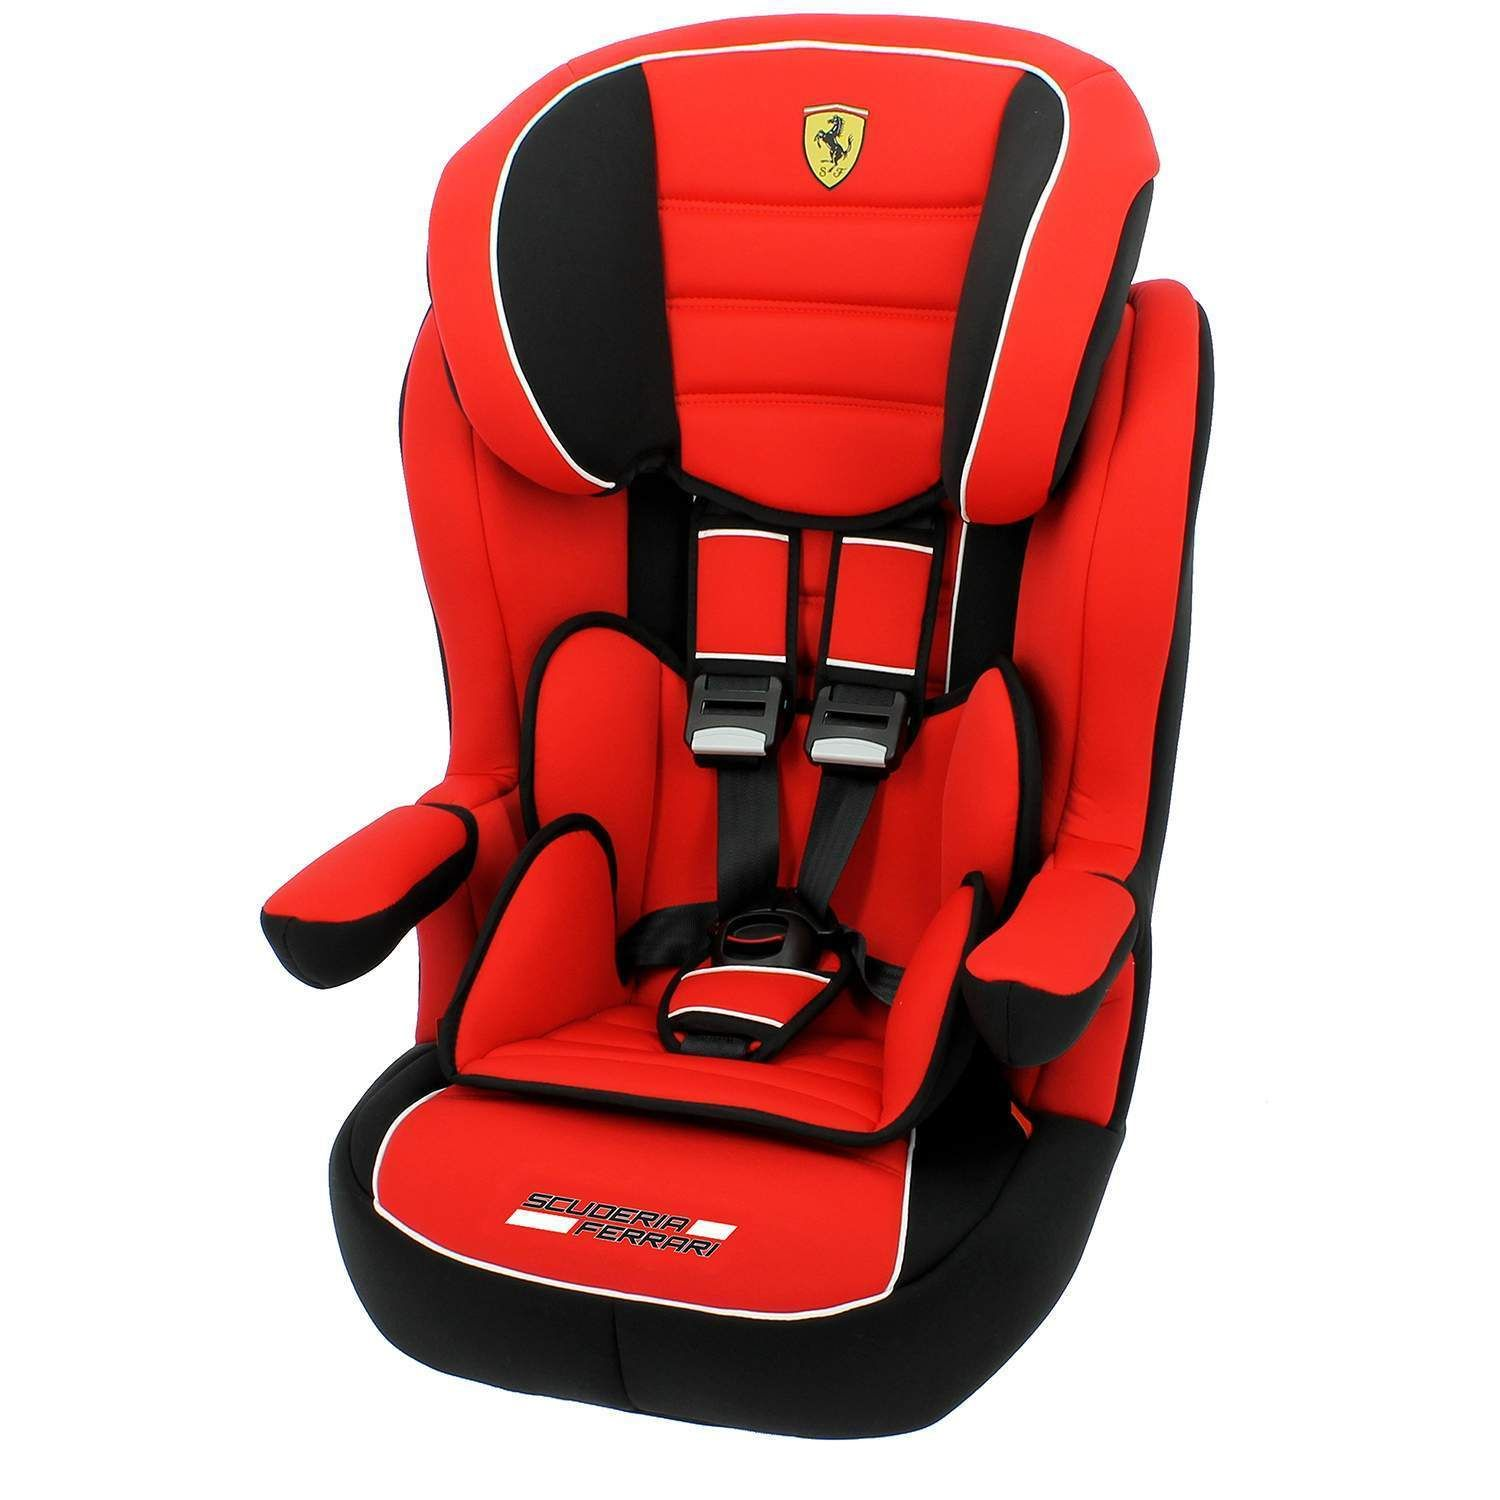 Pin by Norma Roberts on Car Bedroom ideas Car seats